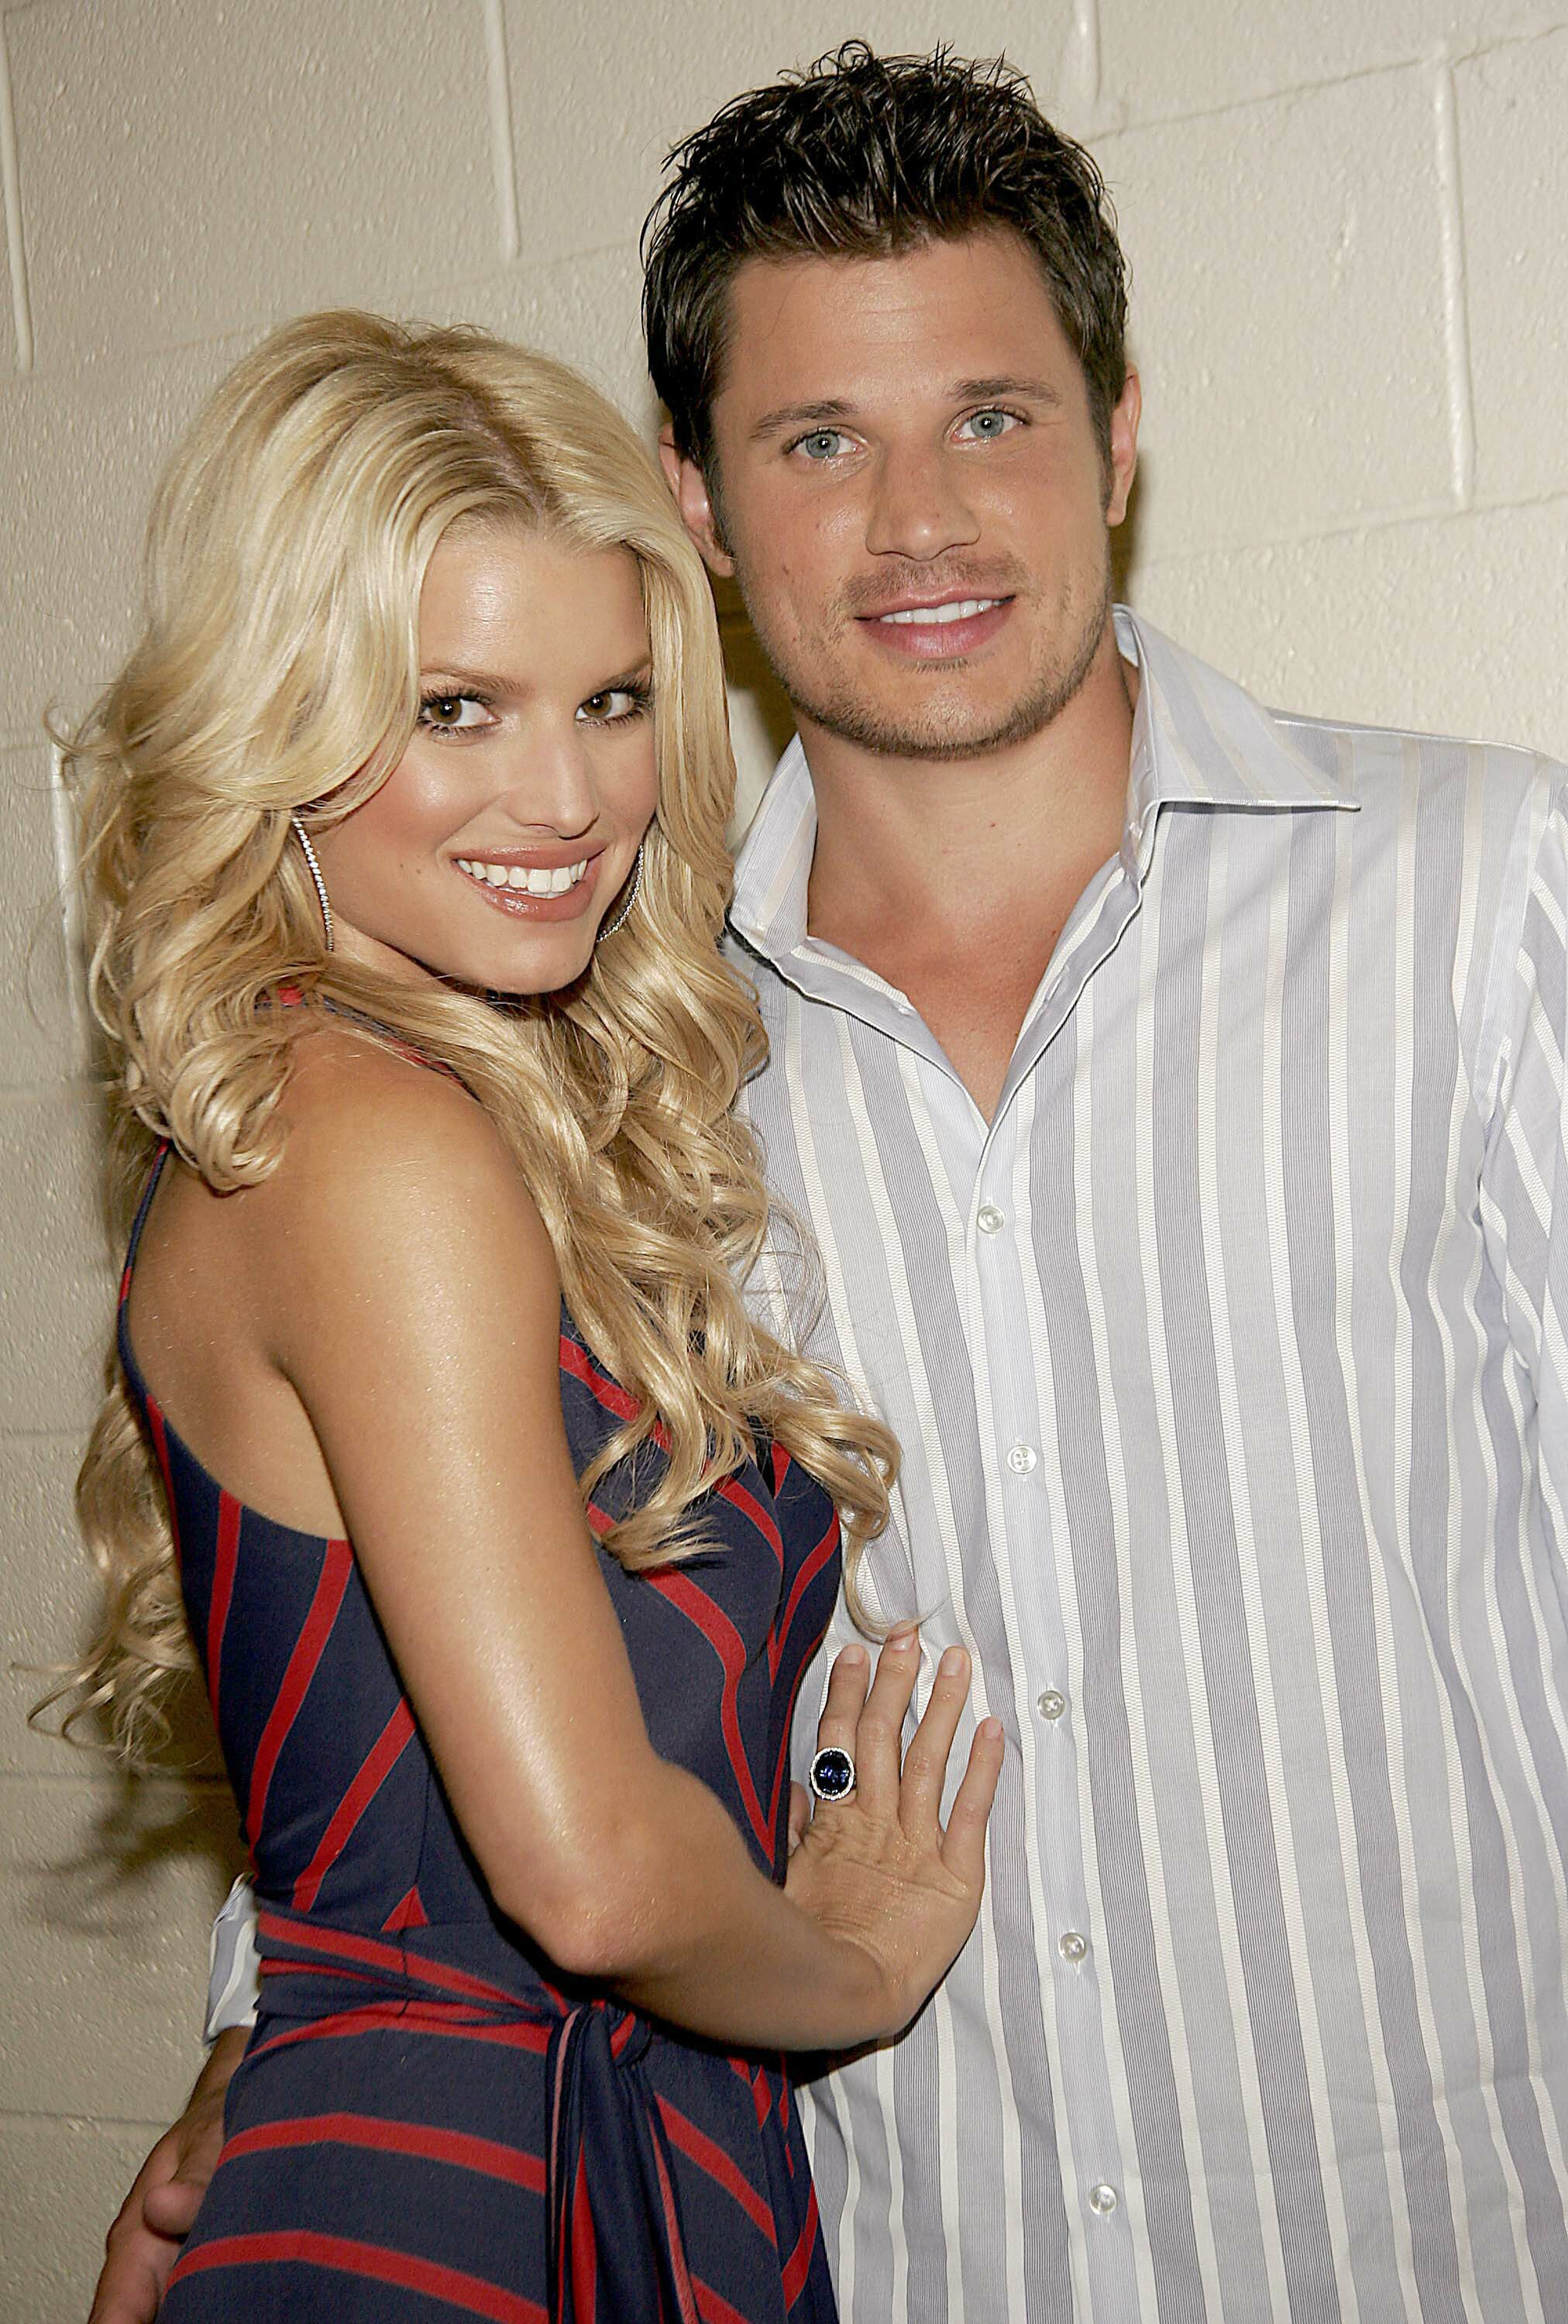 Celeb Red Carpets 22 500x741 ITS OFFICIAL Jessica Simpson and Nick